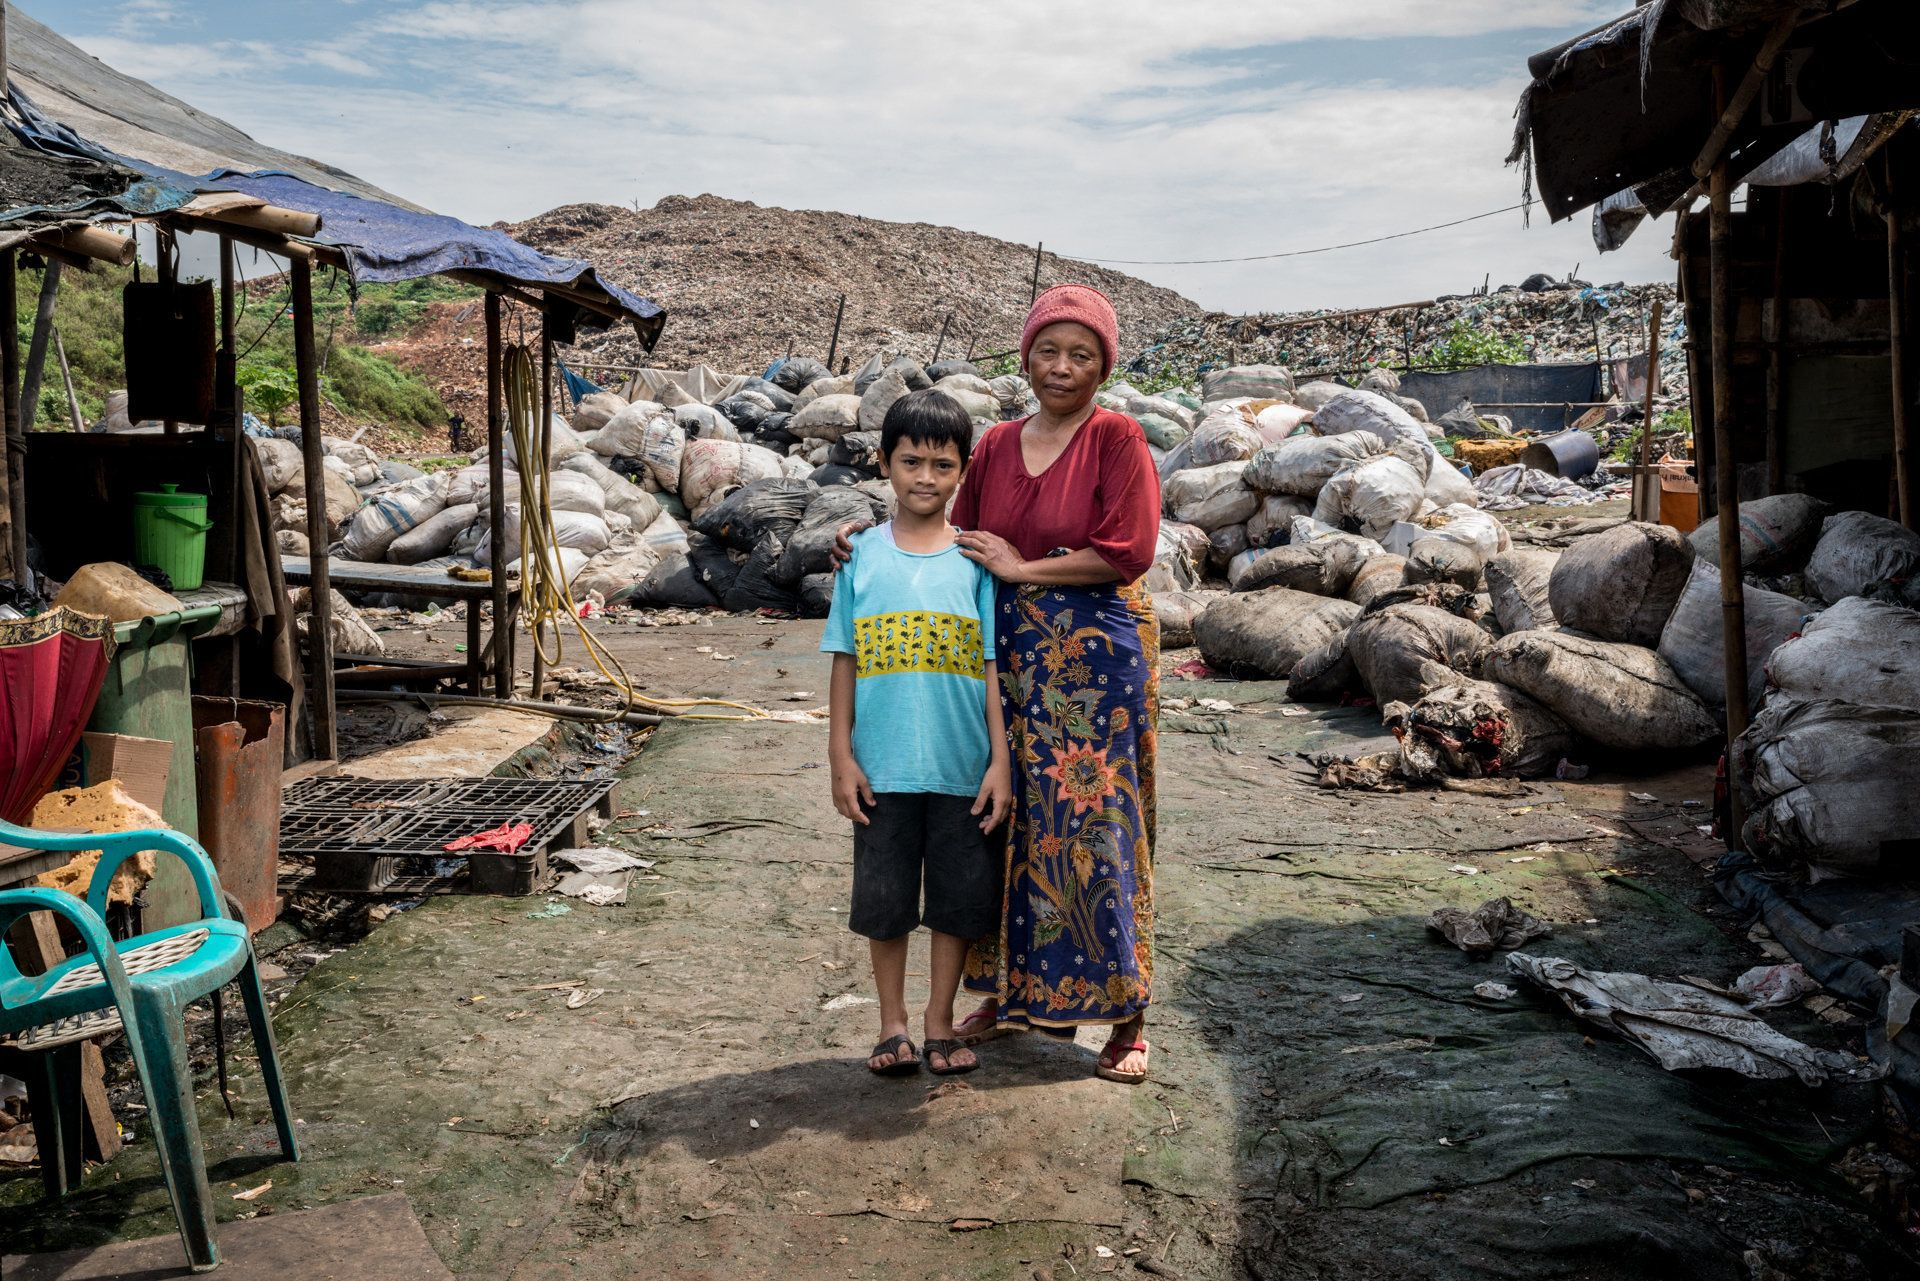 Reza, left, with Mak Muji, the midwife who helped deliver him, in front of his family's shack.